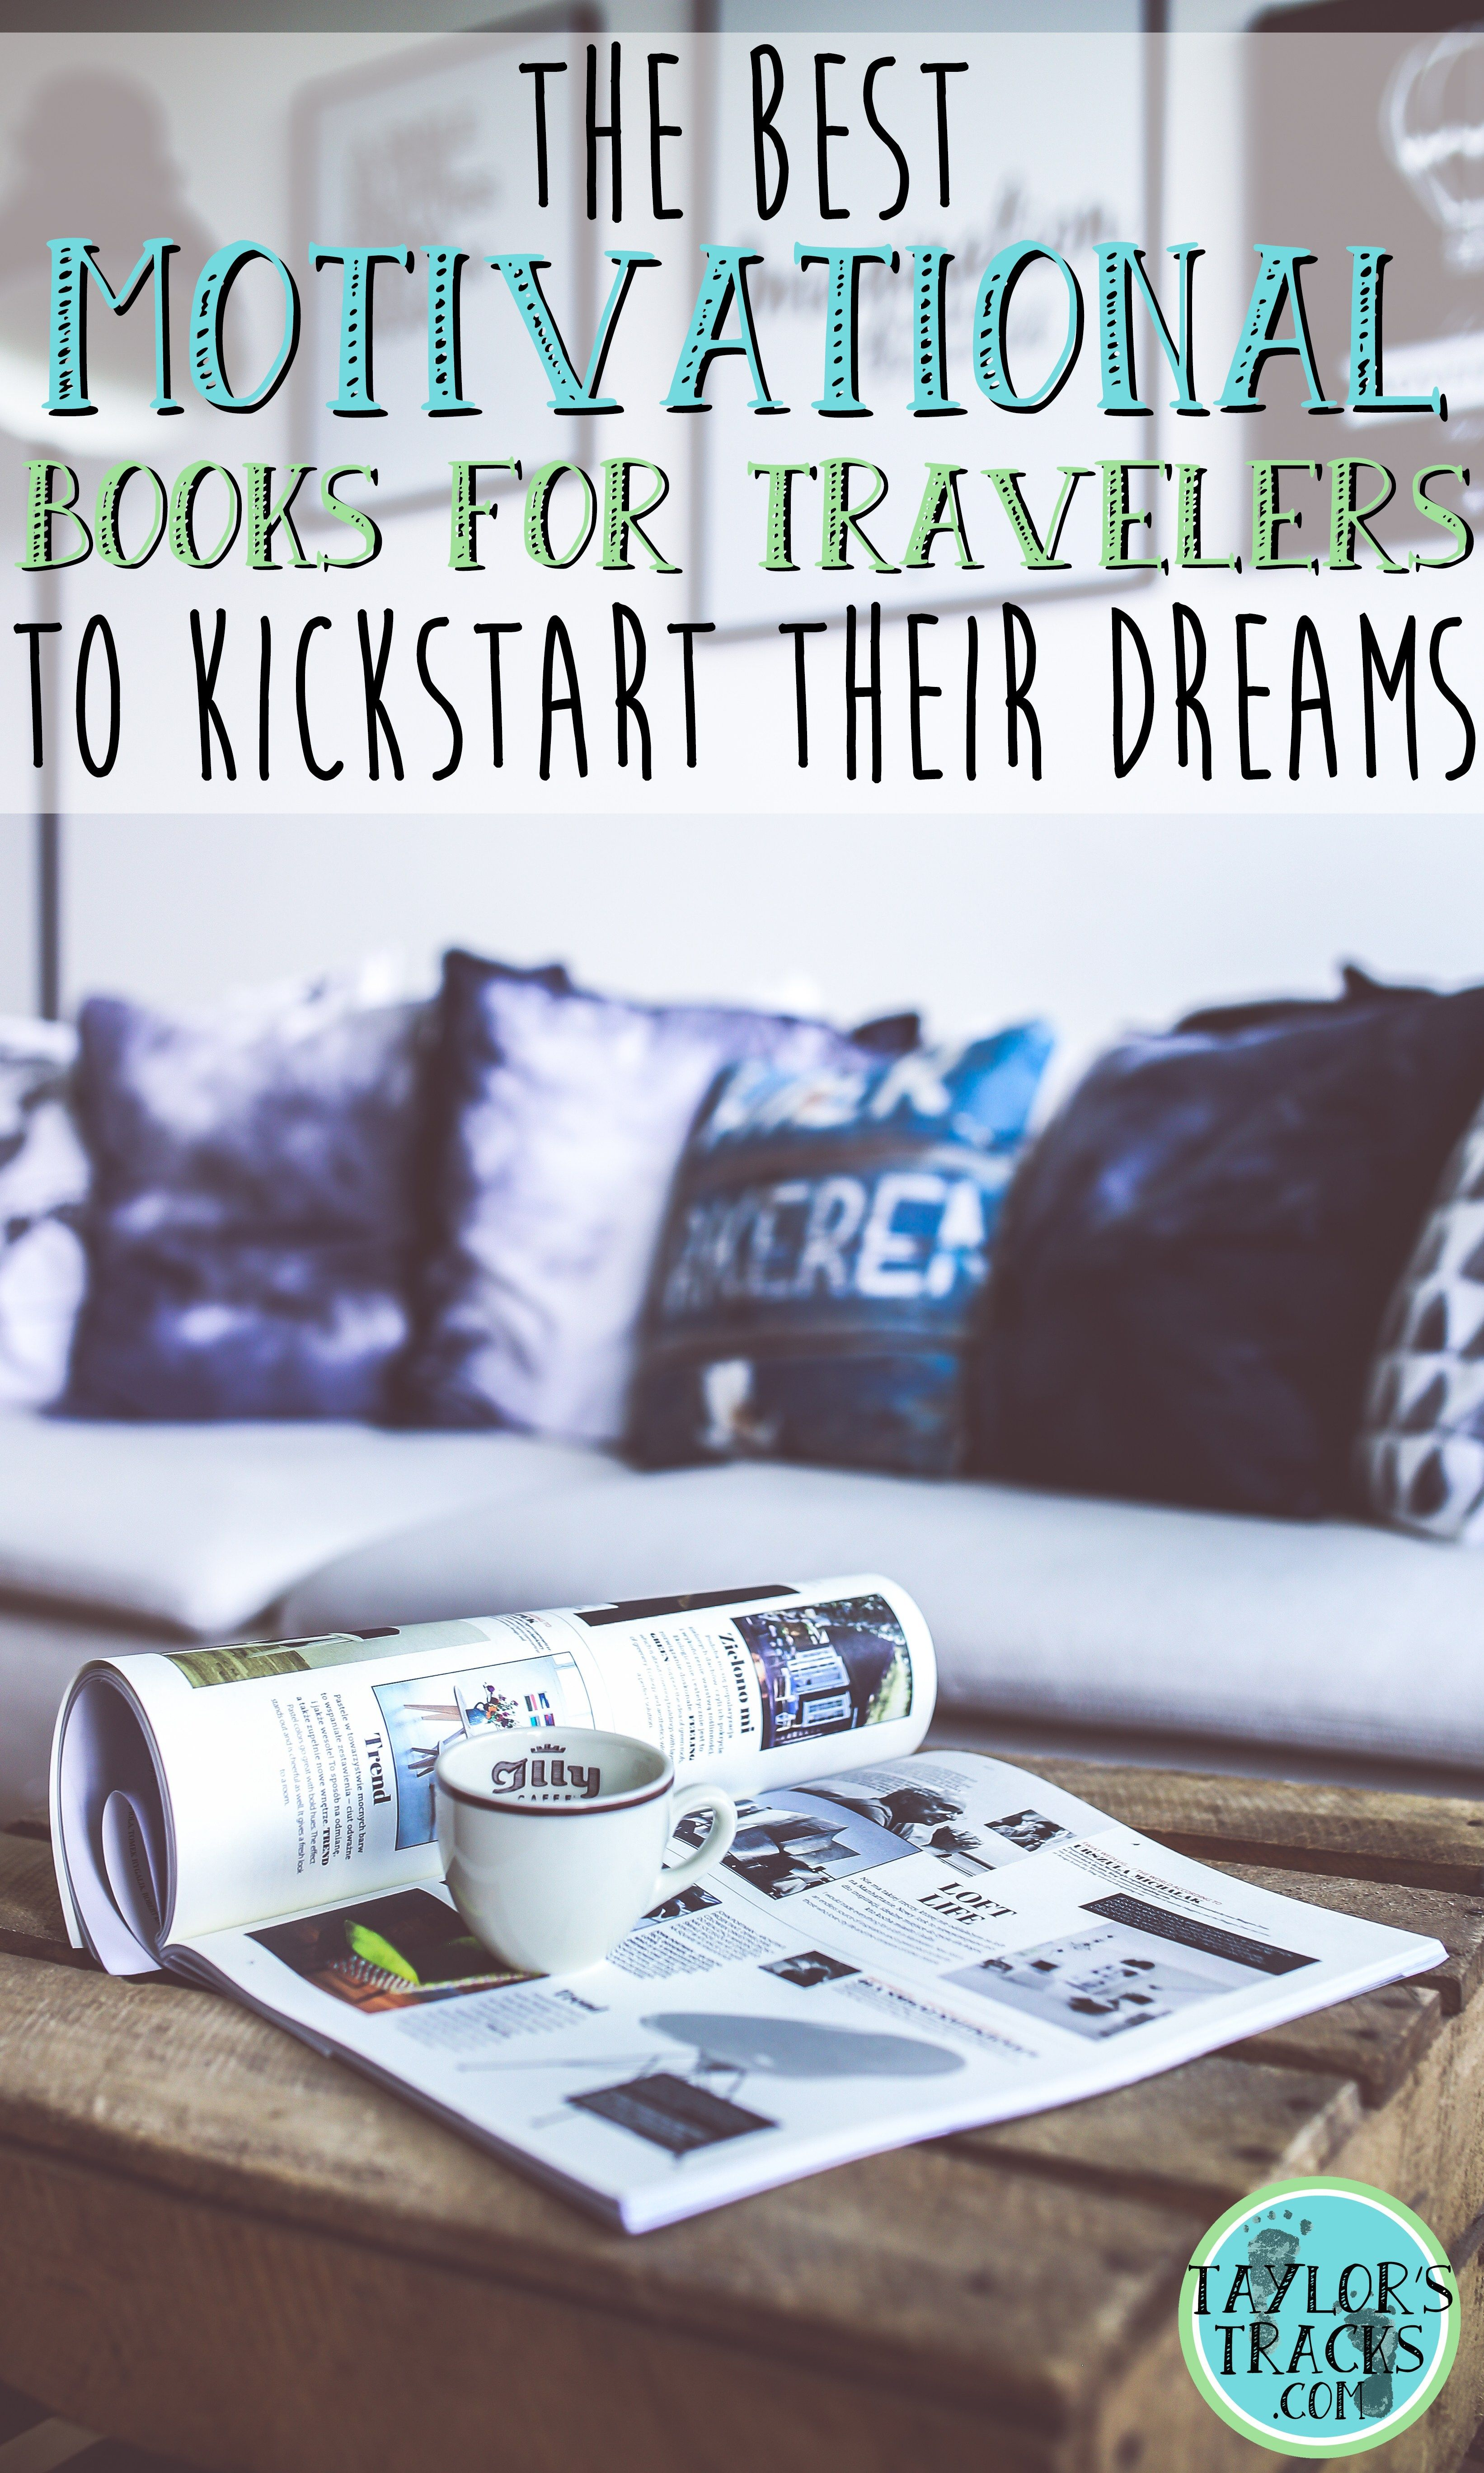 Ready to get stuff done and make your dreams a reality? Read these awesome motivational books for travelers (or those who just want to be inspired).